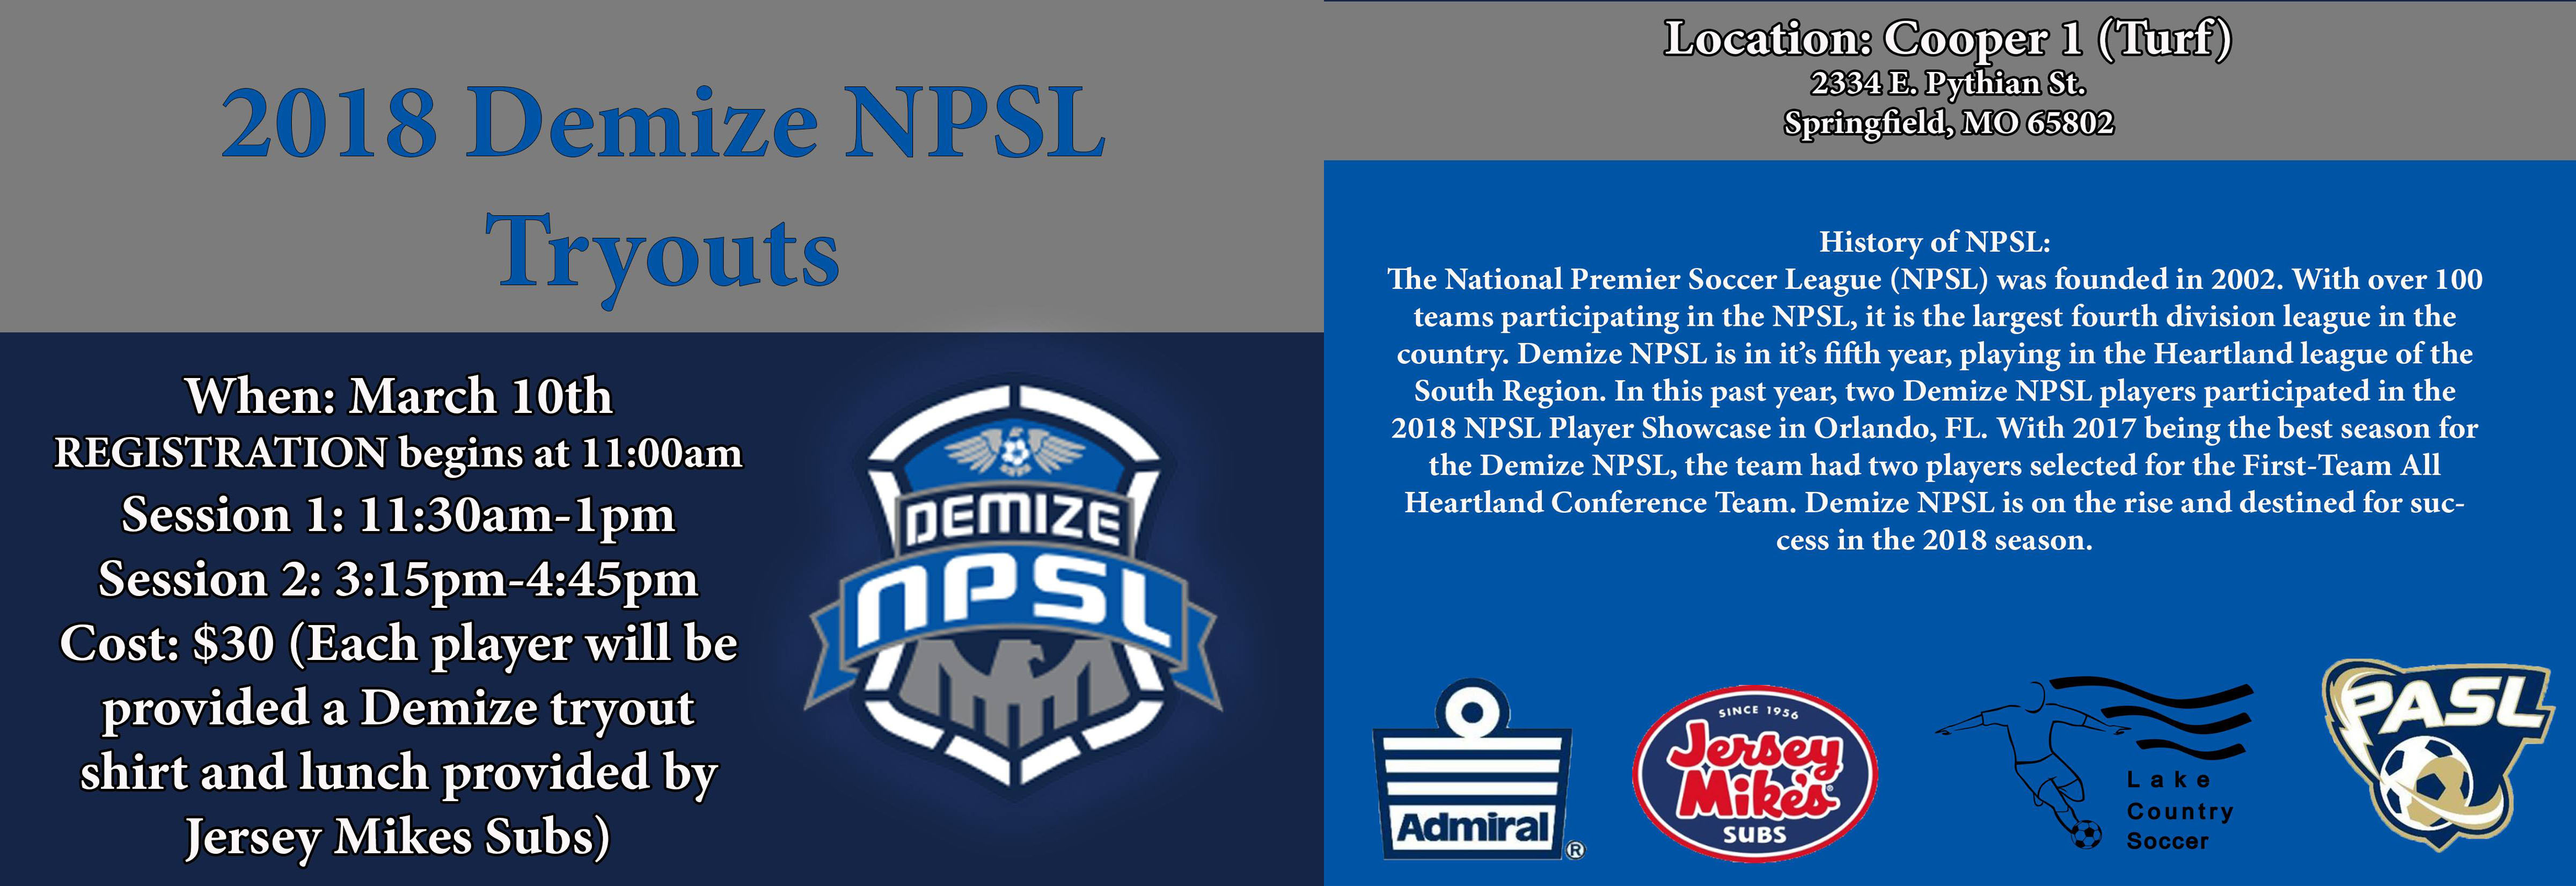 Demize NPSL Tryouts